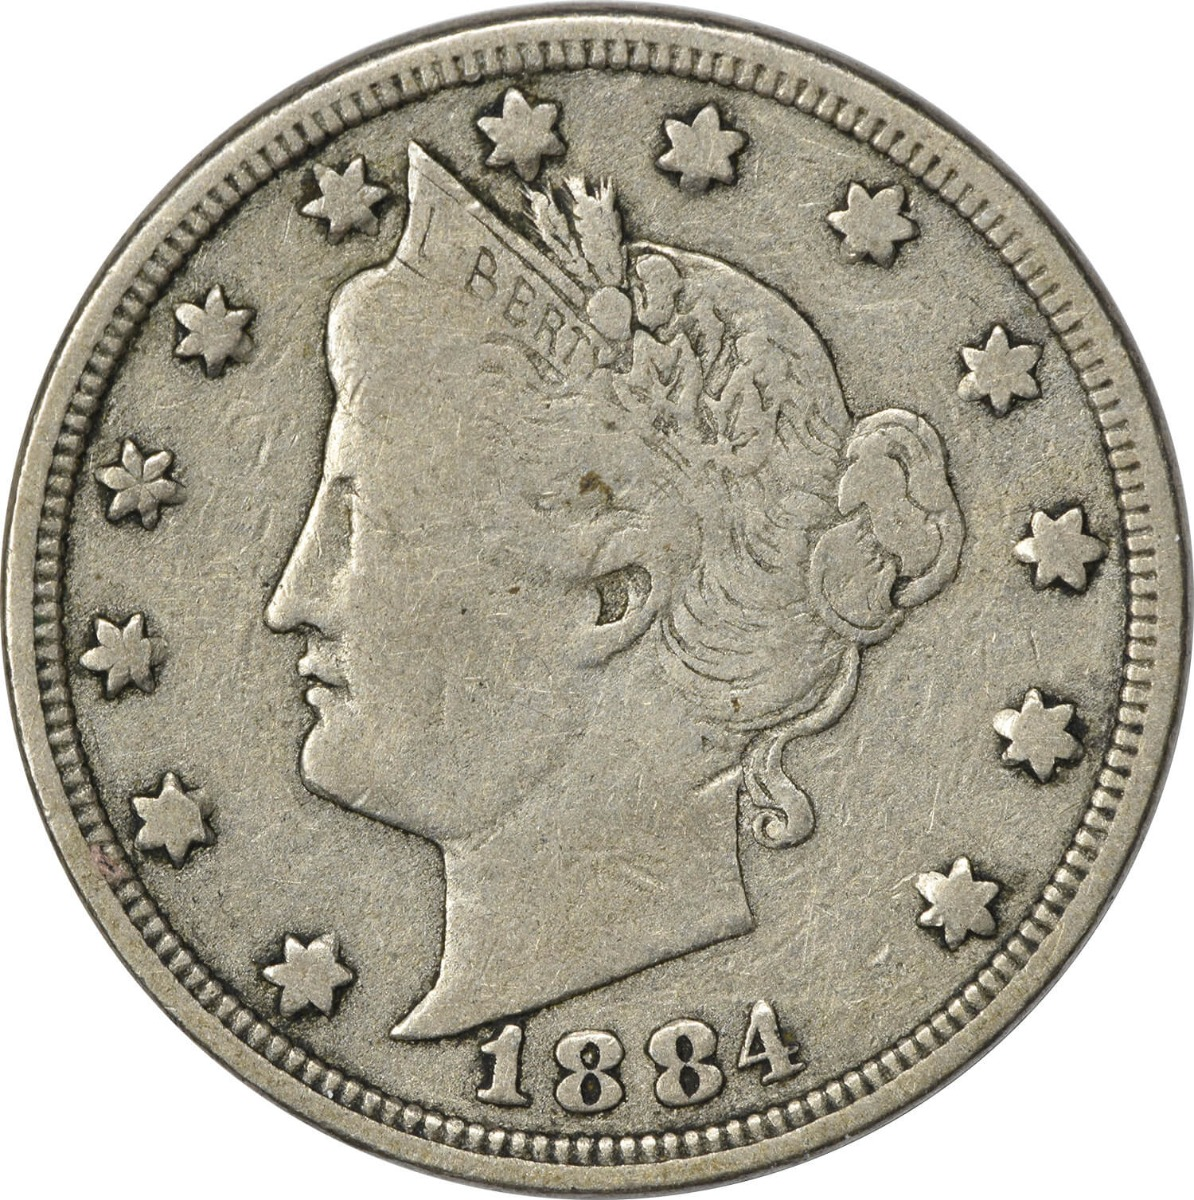 1884 Liberty Nickel, VG, Uncertified